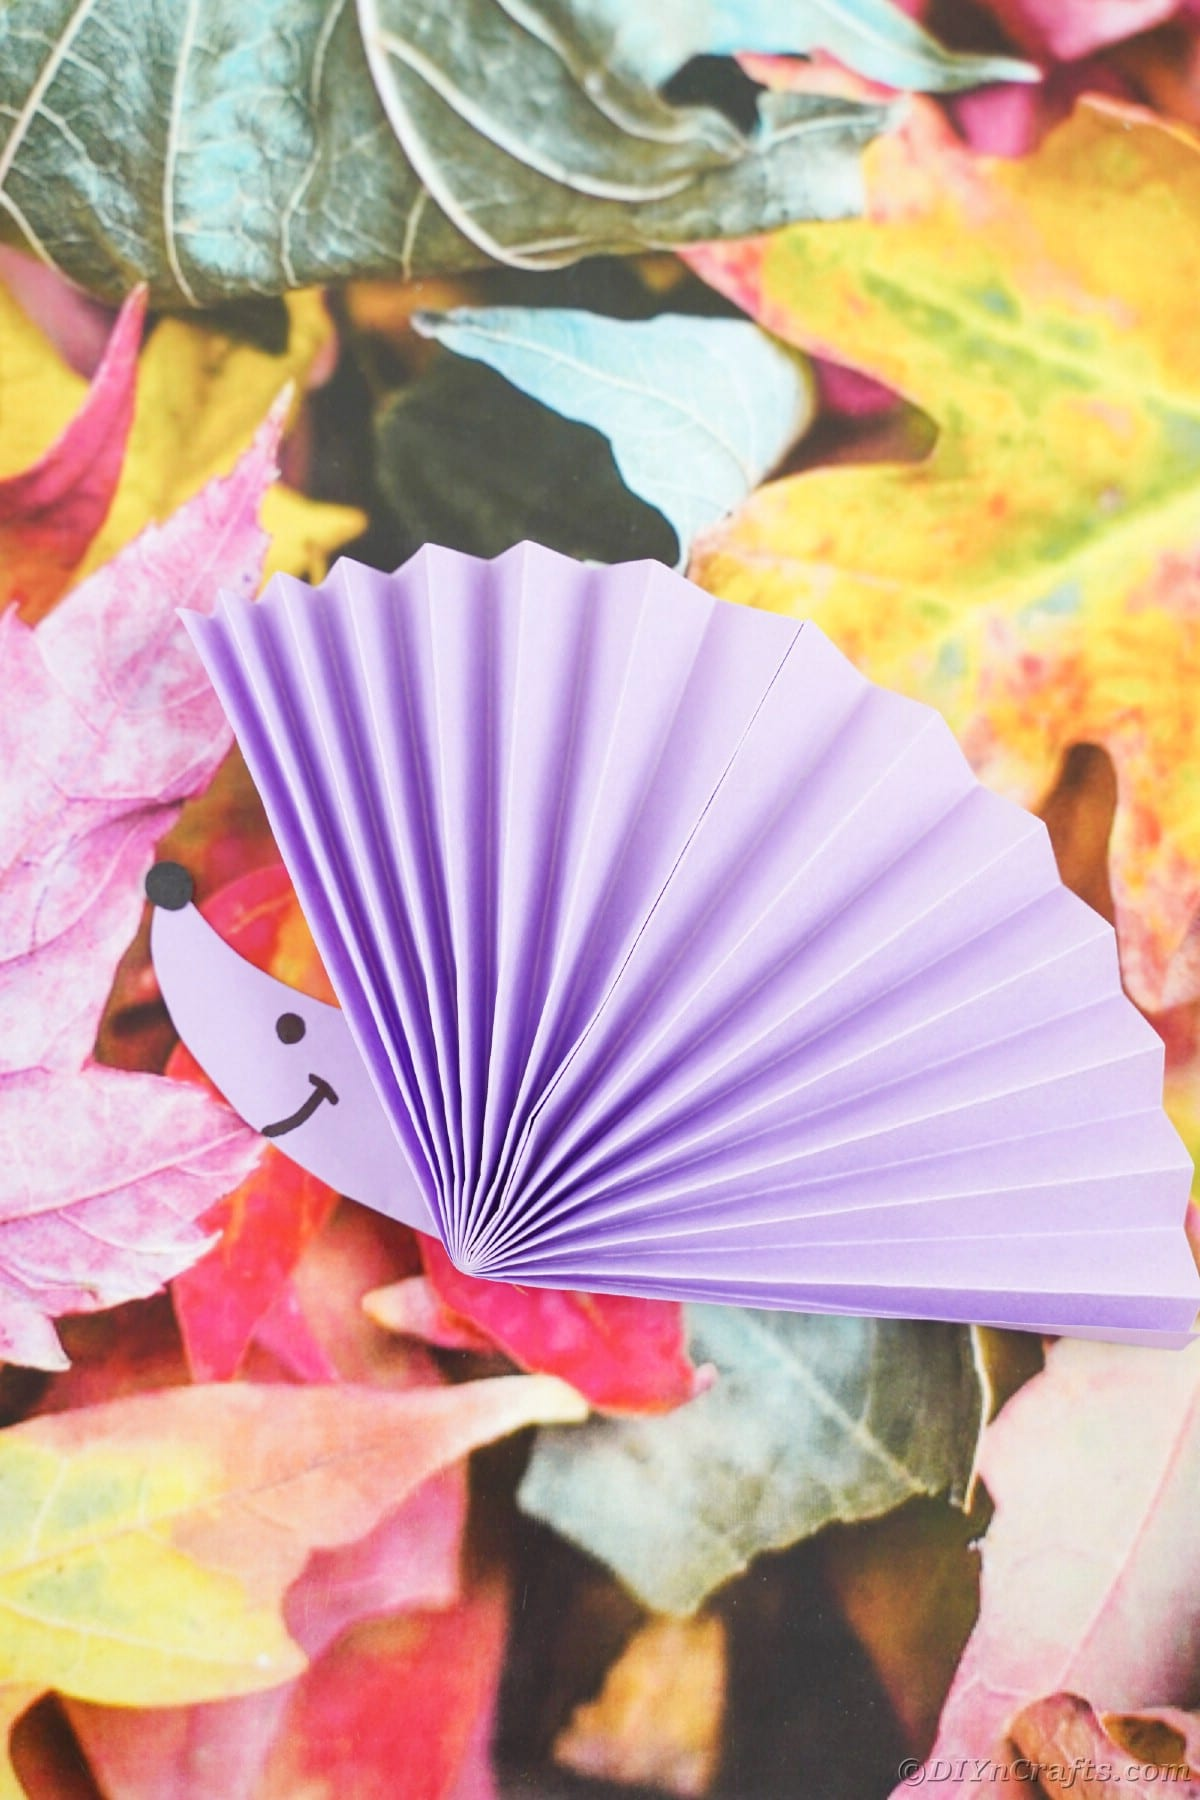 Fake leaf paper with purple fan on top